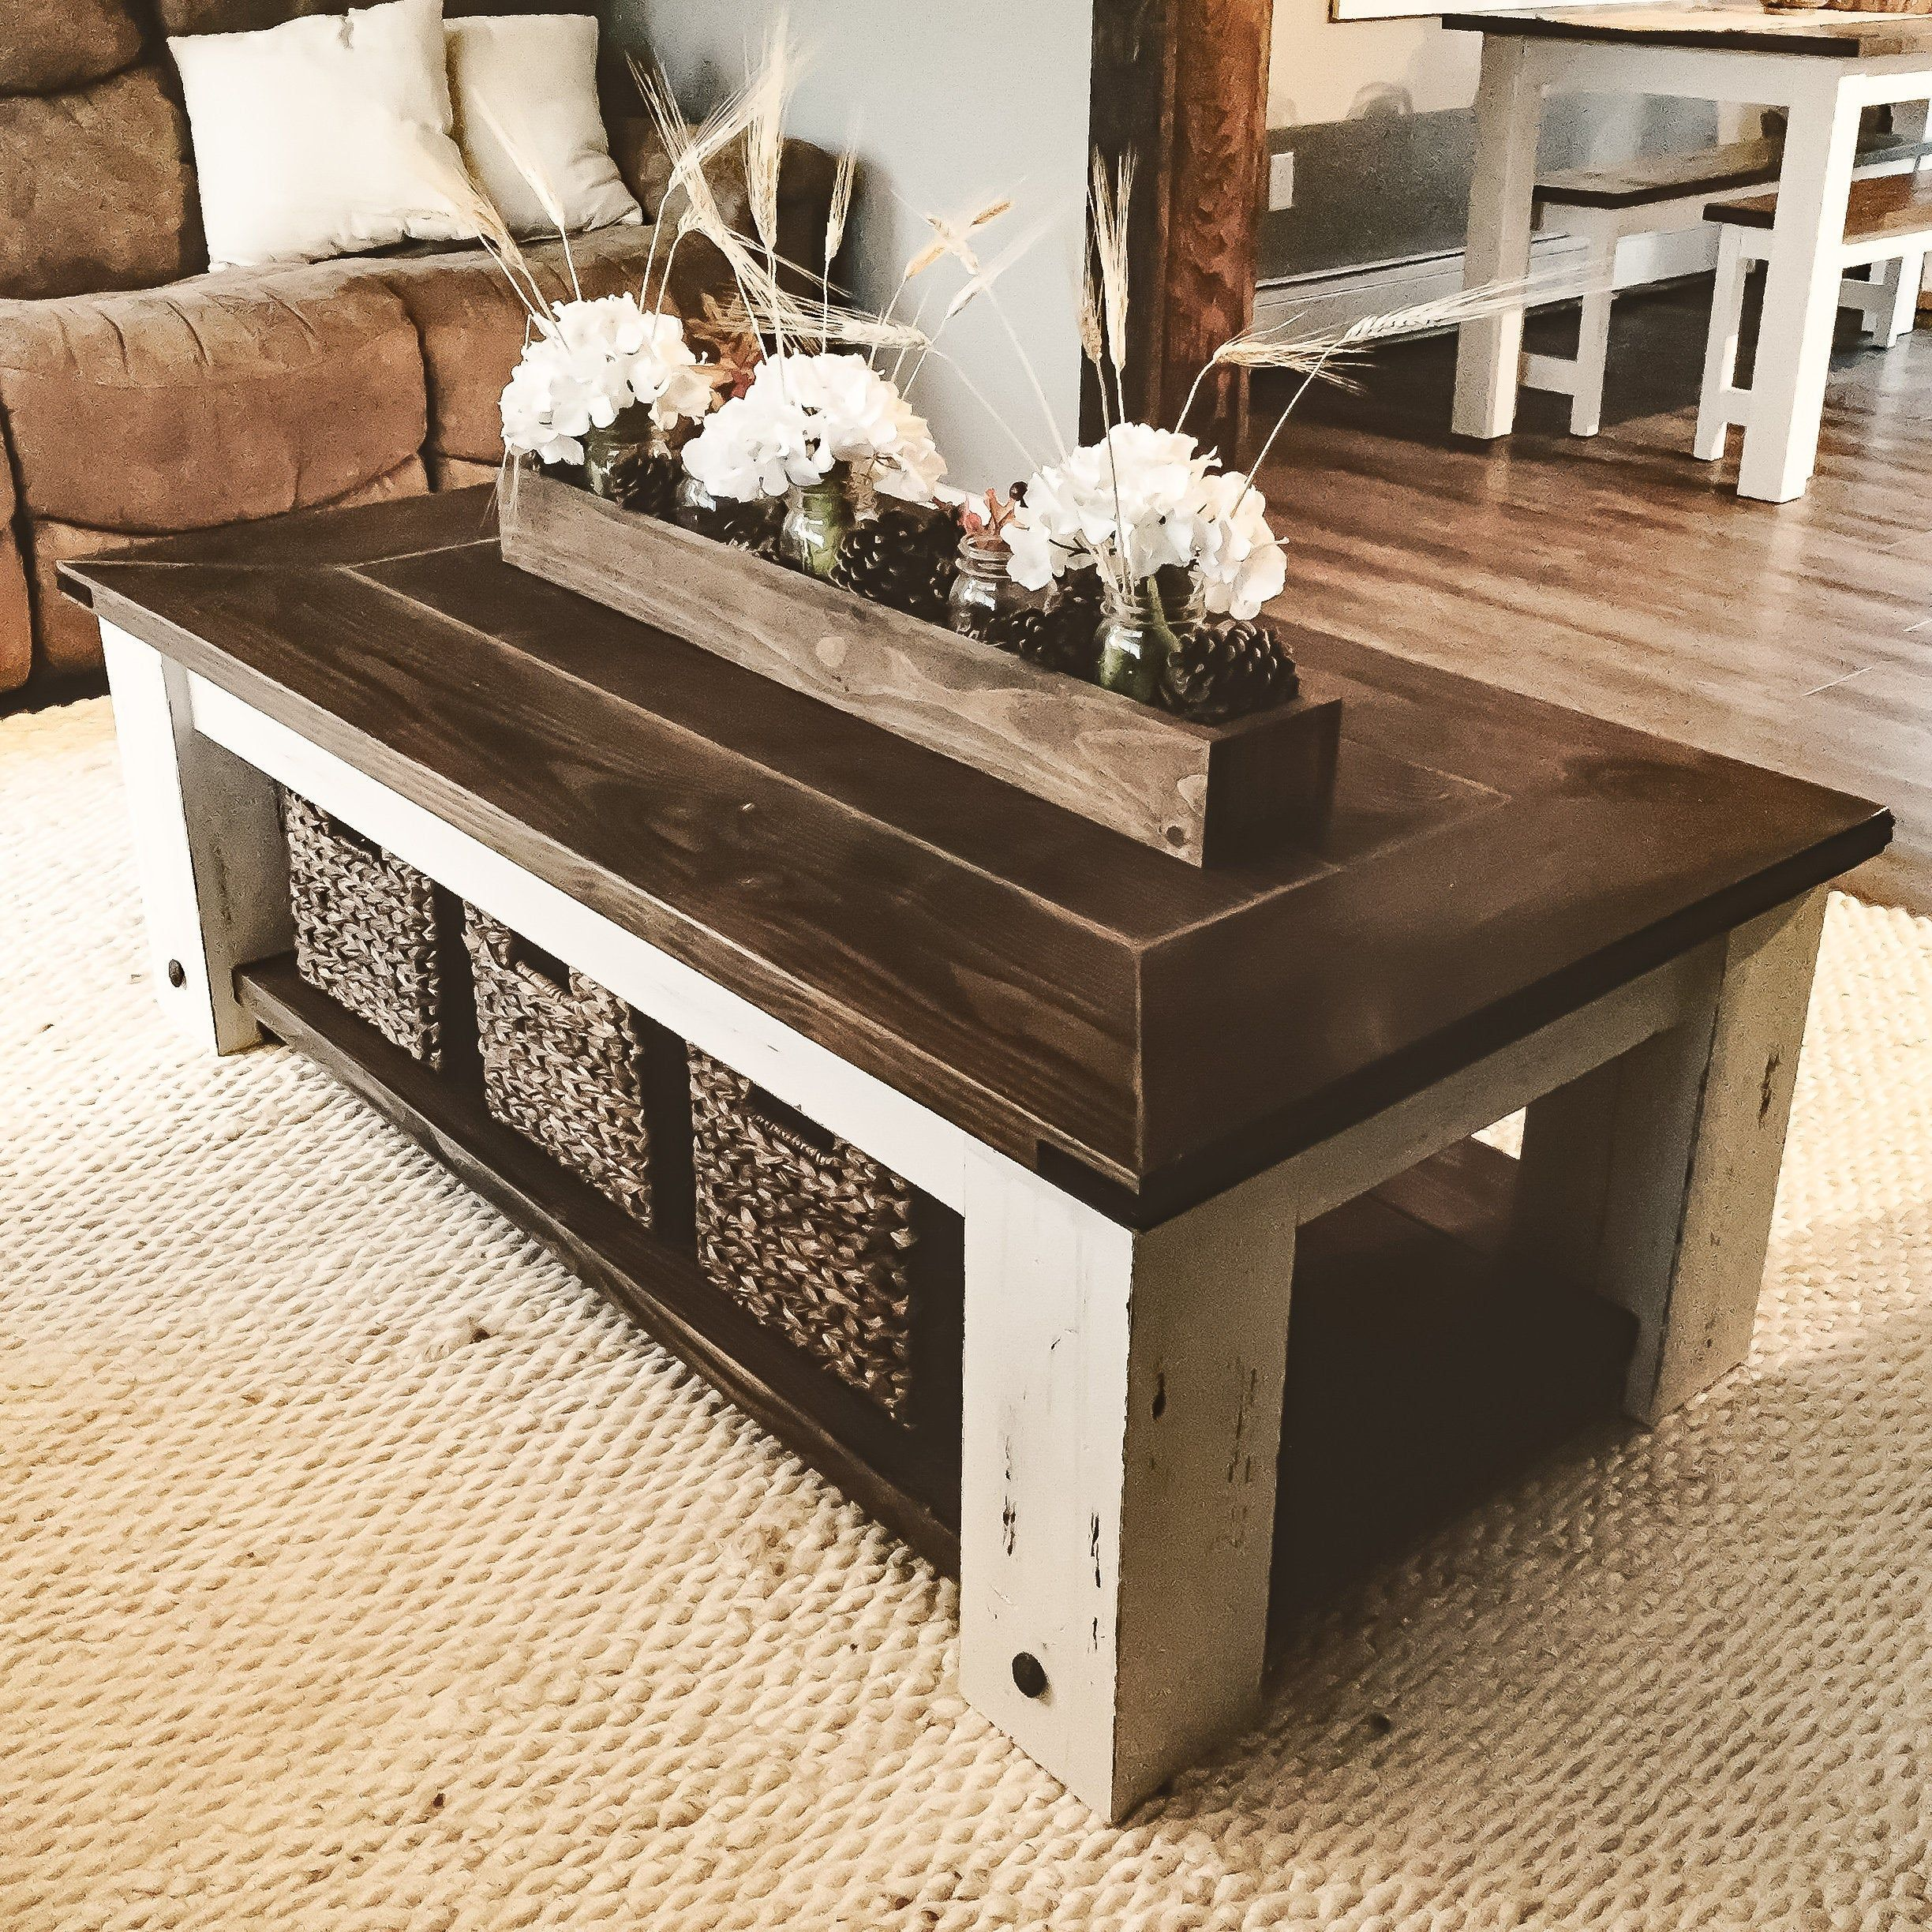 DIY Farmhouse Coffee Table Plans Woodworking Plans, DIY